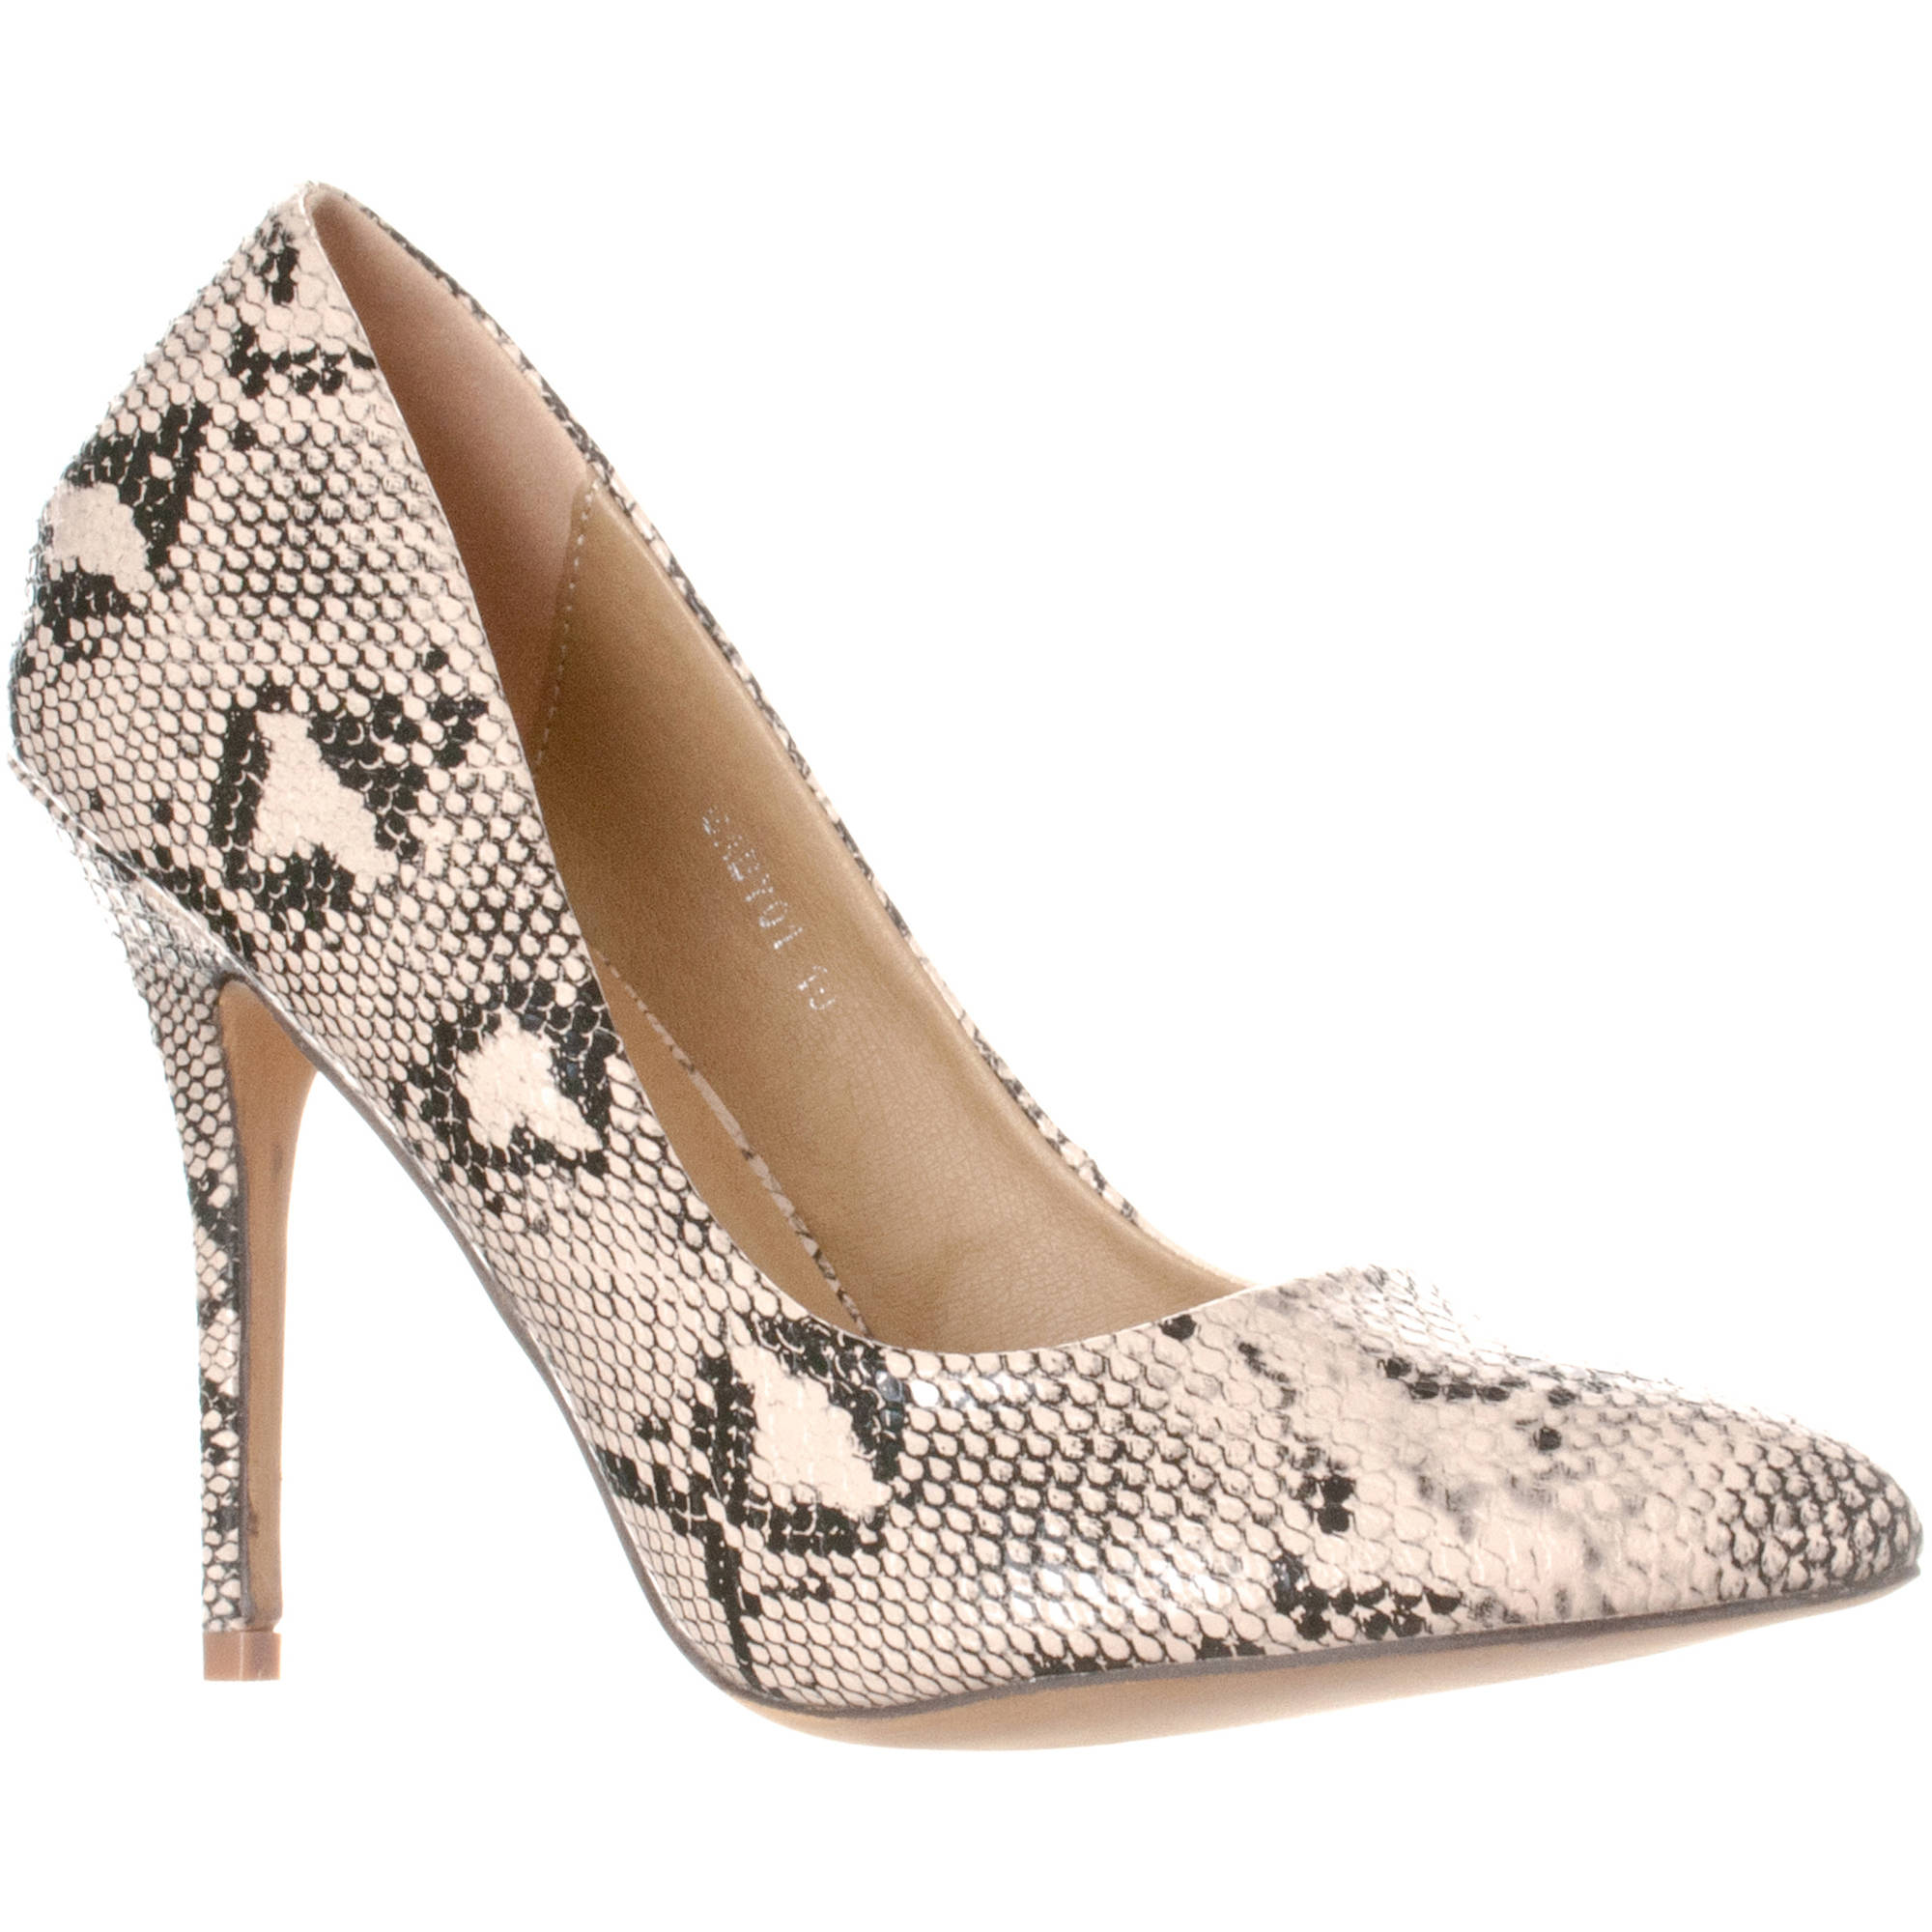 Riverberry Women's 'Gaby' Fashion Stiletto Heels